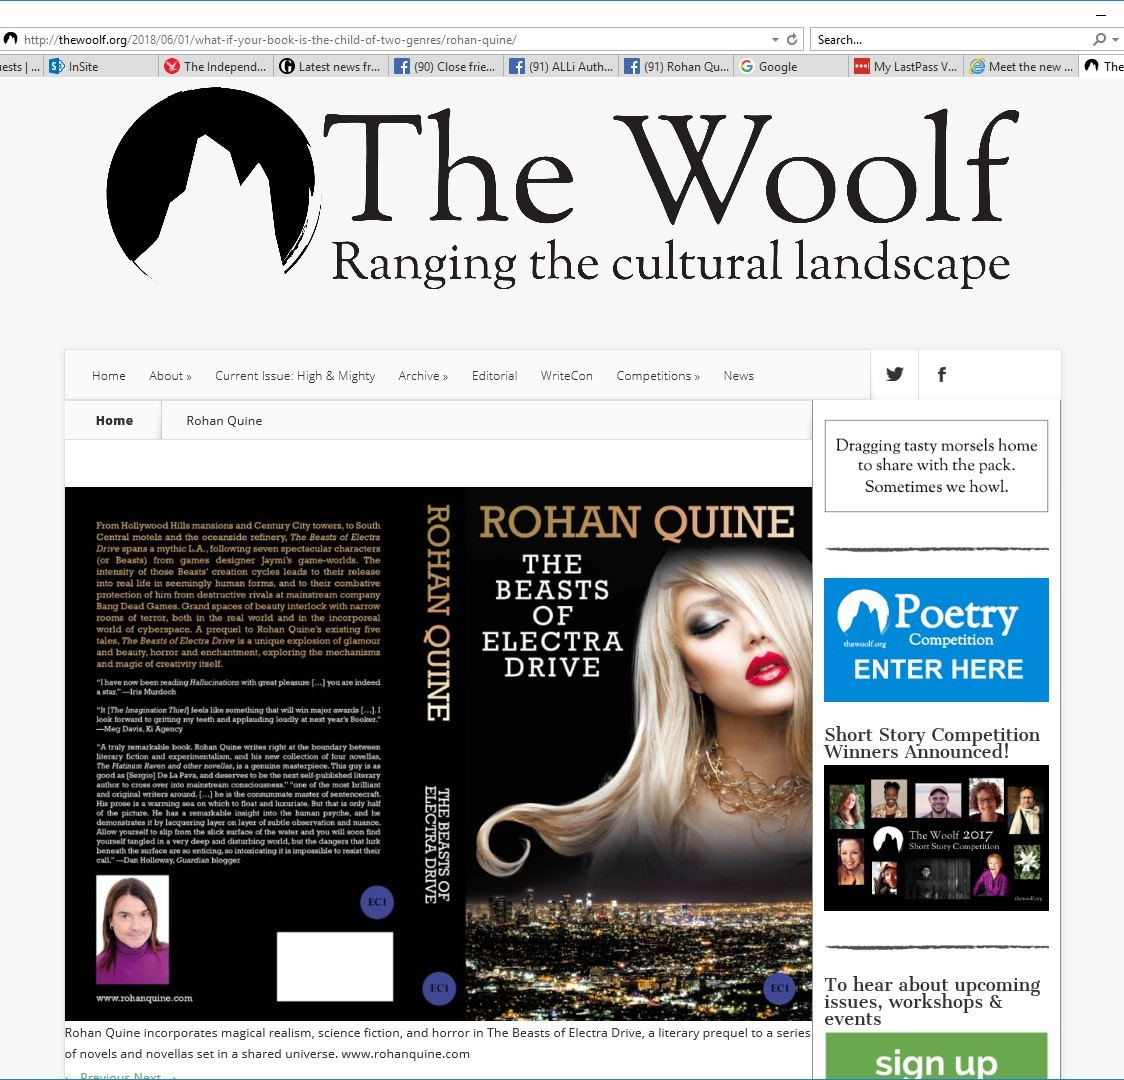 """The Beasts of Electra Drive"" by Rohan Quine, in literary magazine ""The Woolf"""